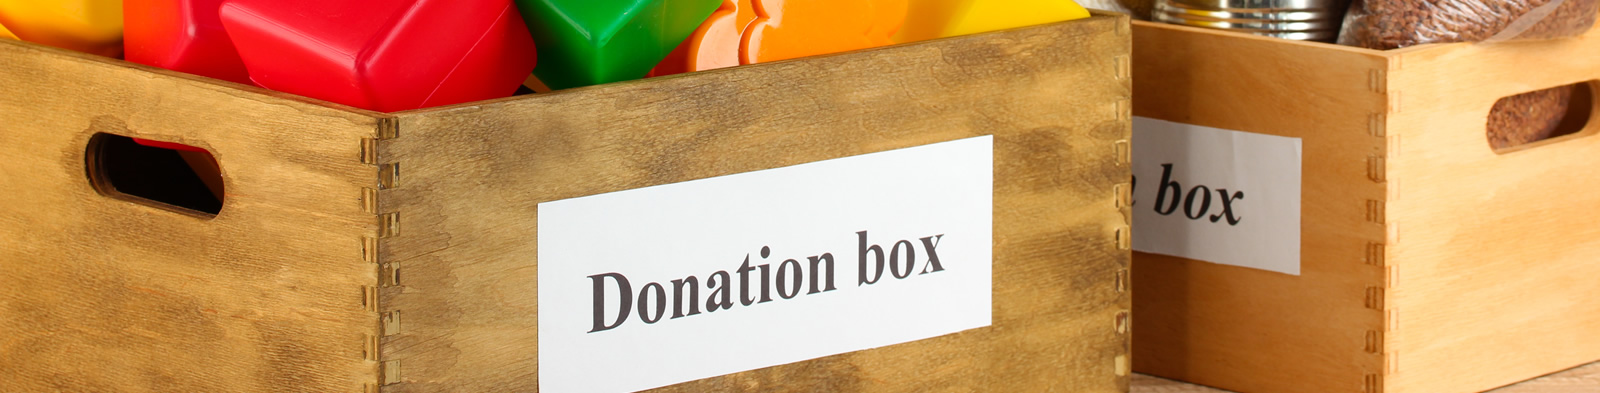 Donation box containing goods